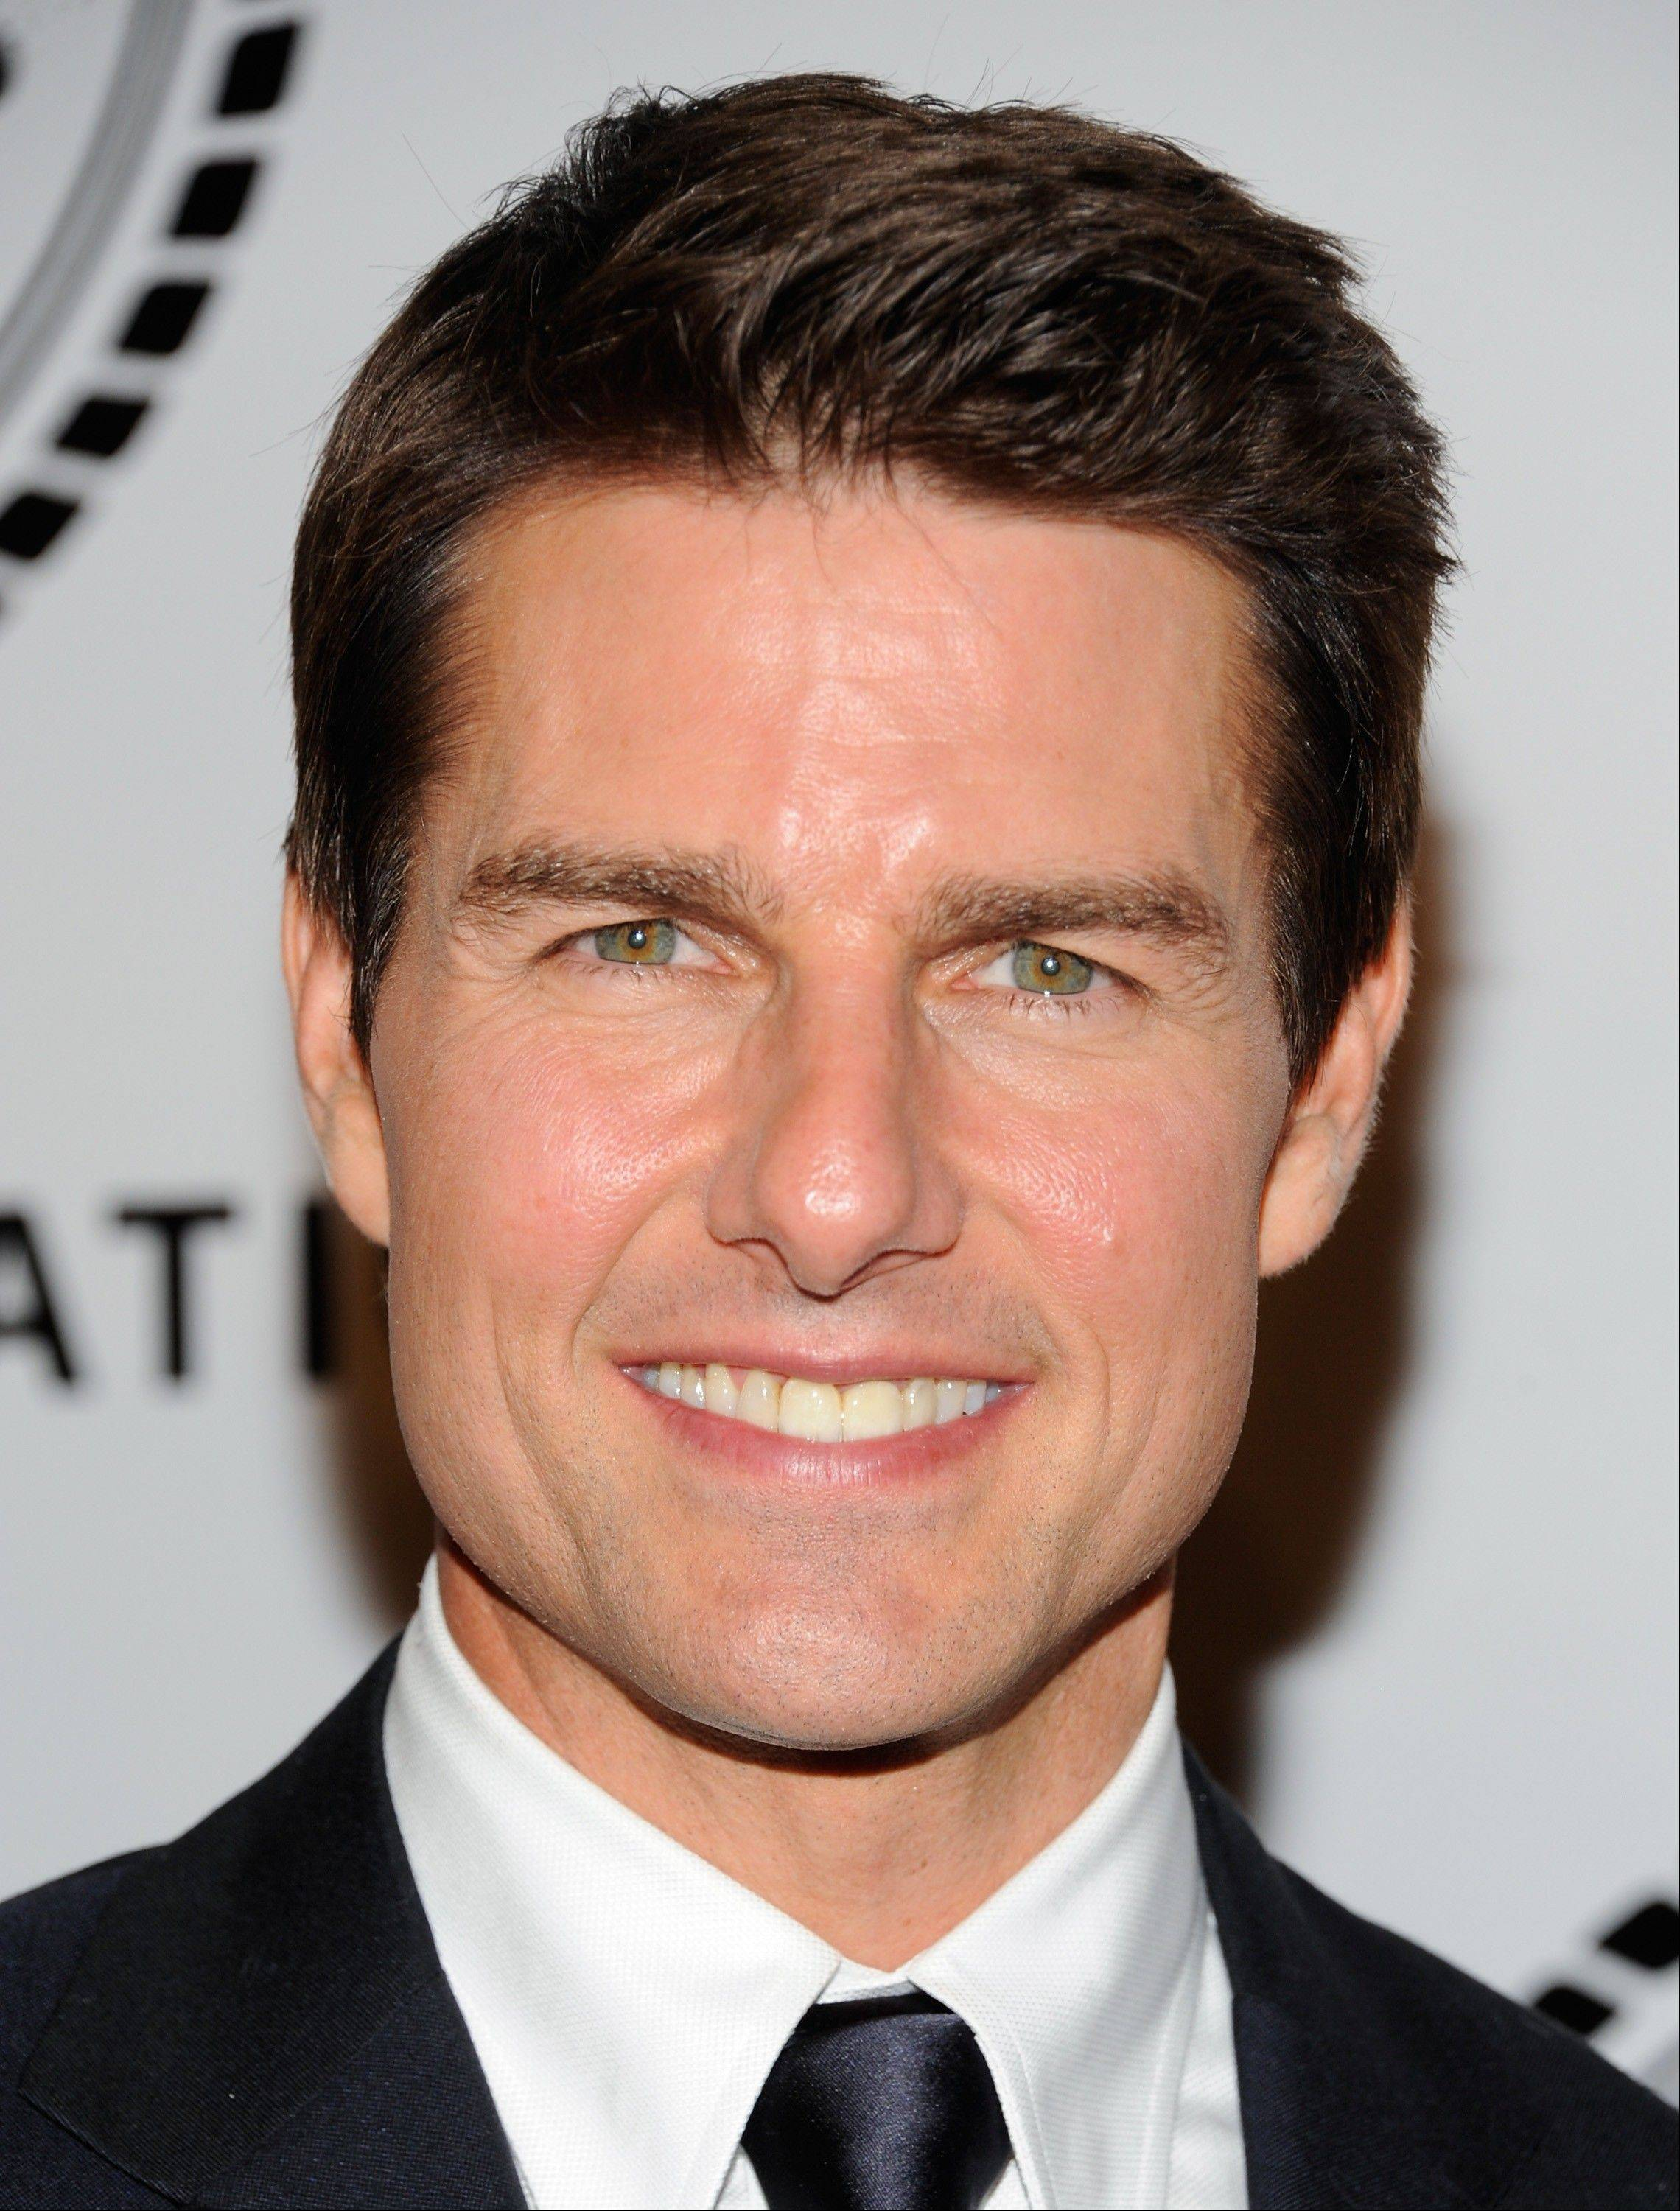 Police say a security guard at actor Tom Cruise's house used a stun gun on a would-be prowler.